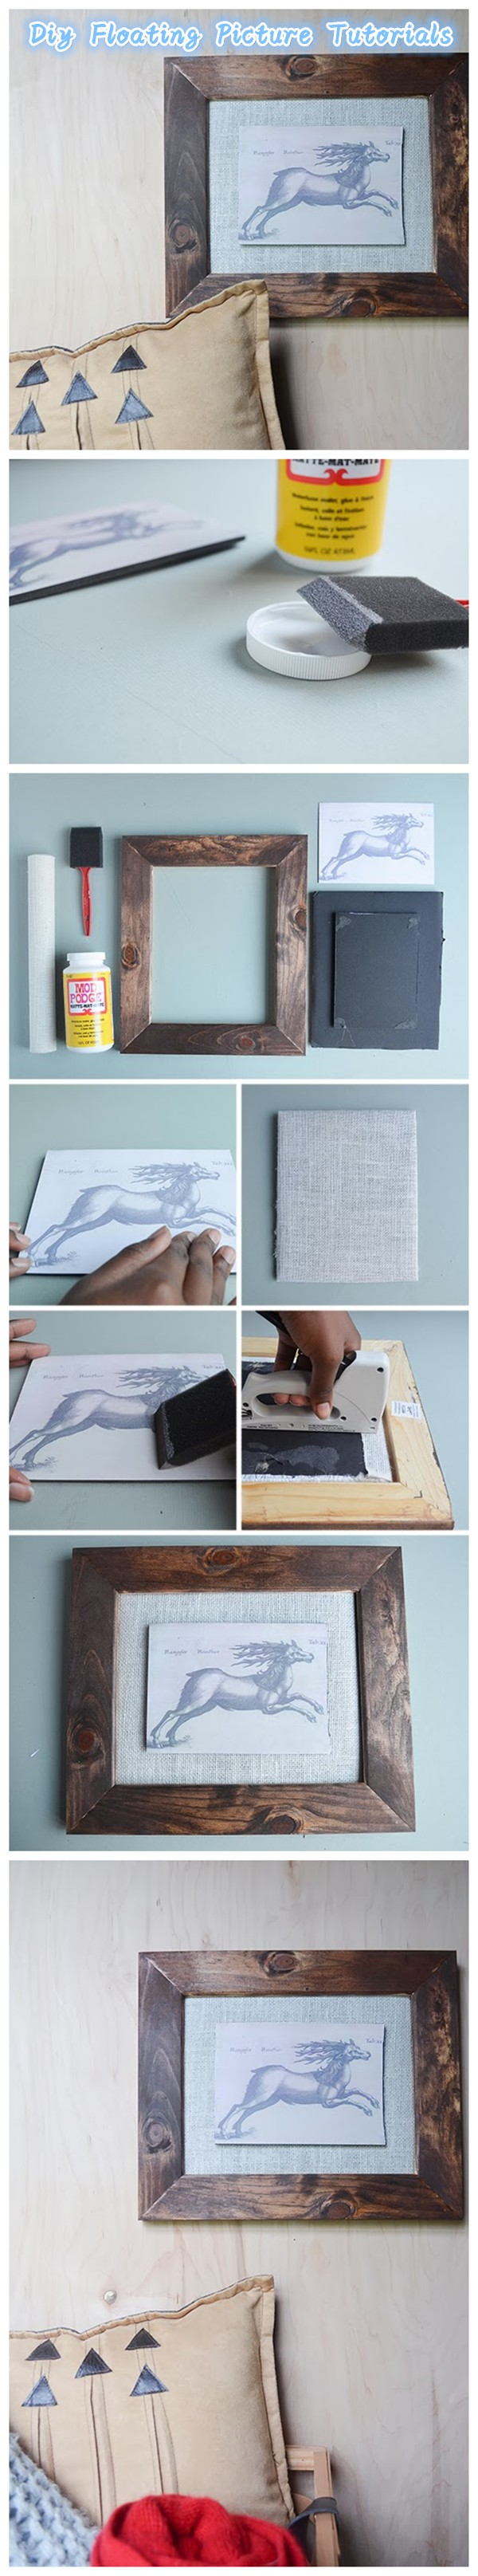 Diy Floating Picture Tutorials